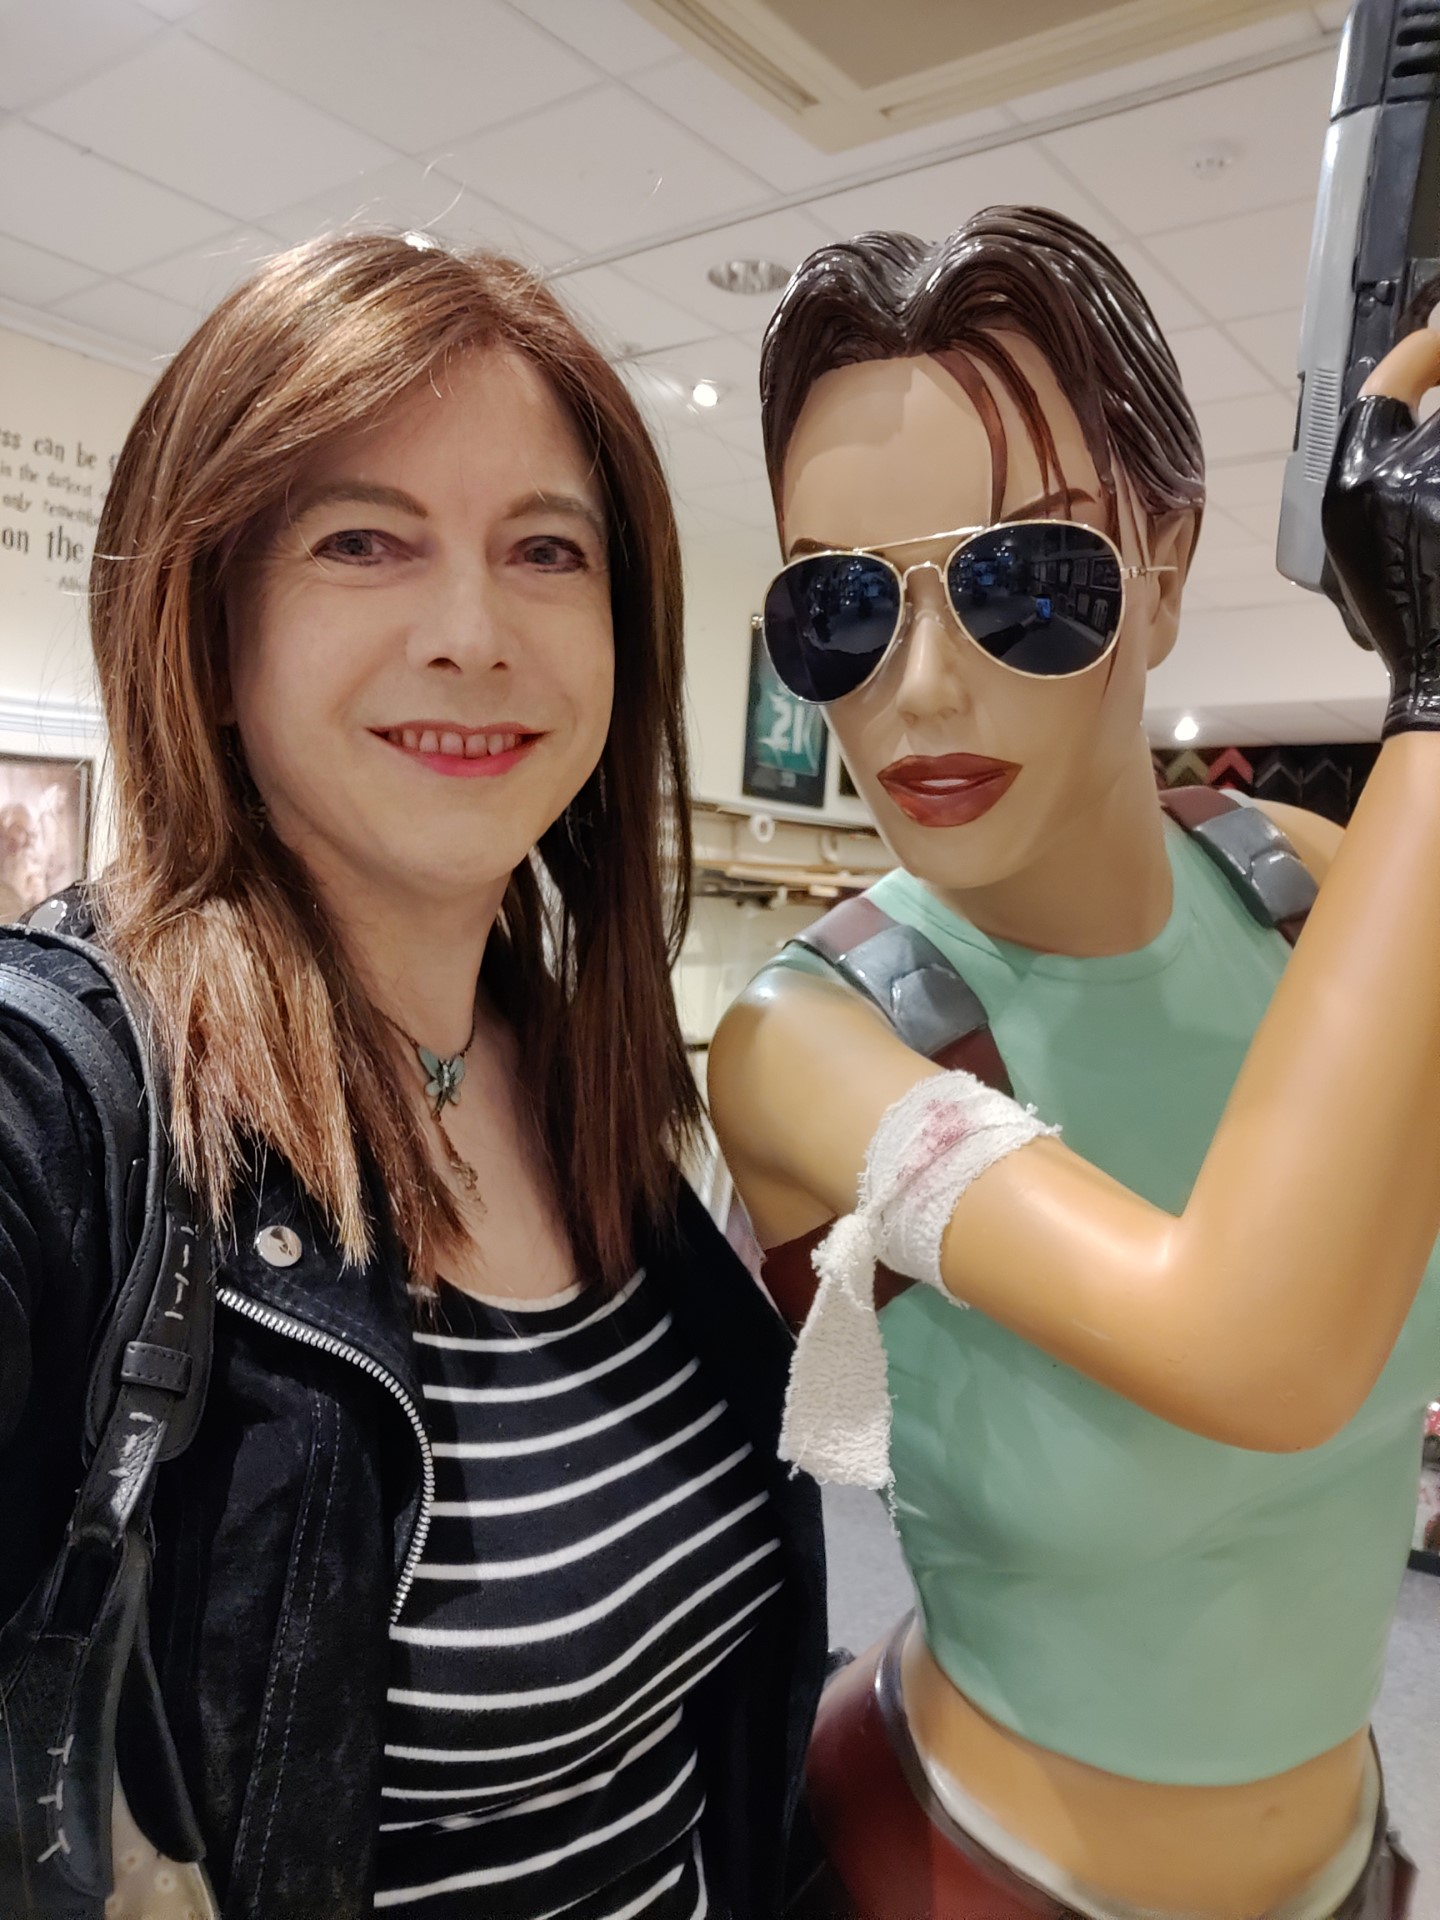 Selfie with Lara Croft